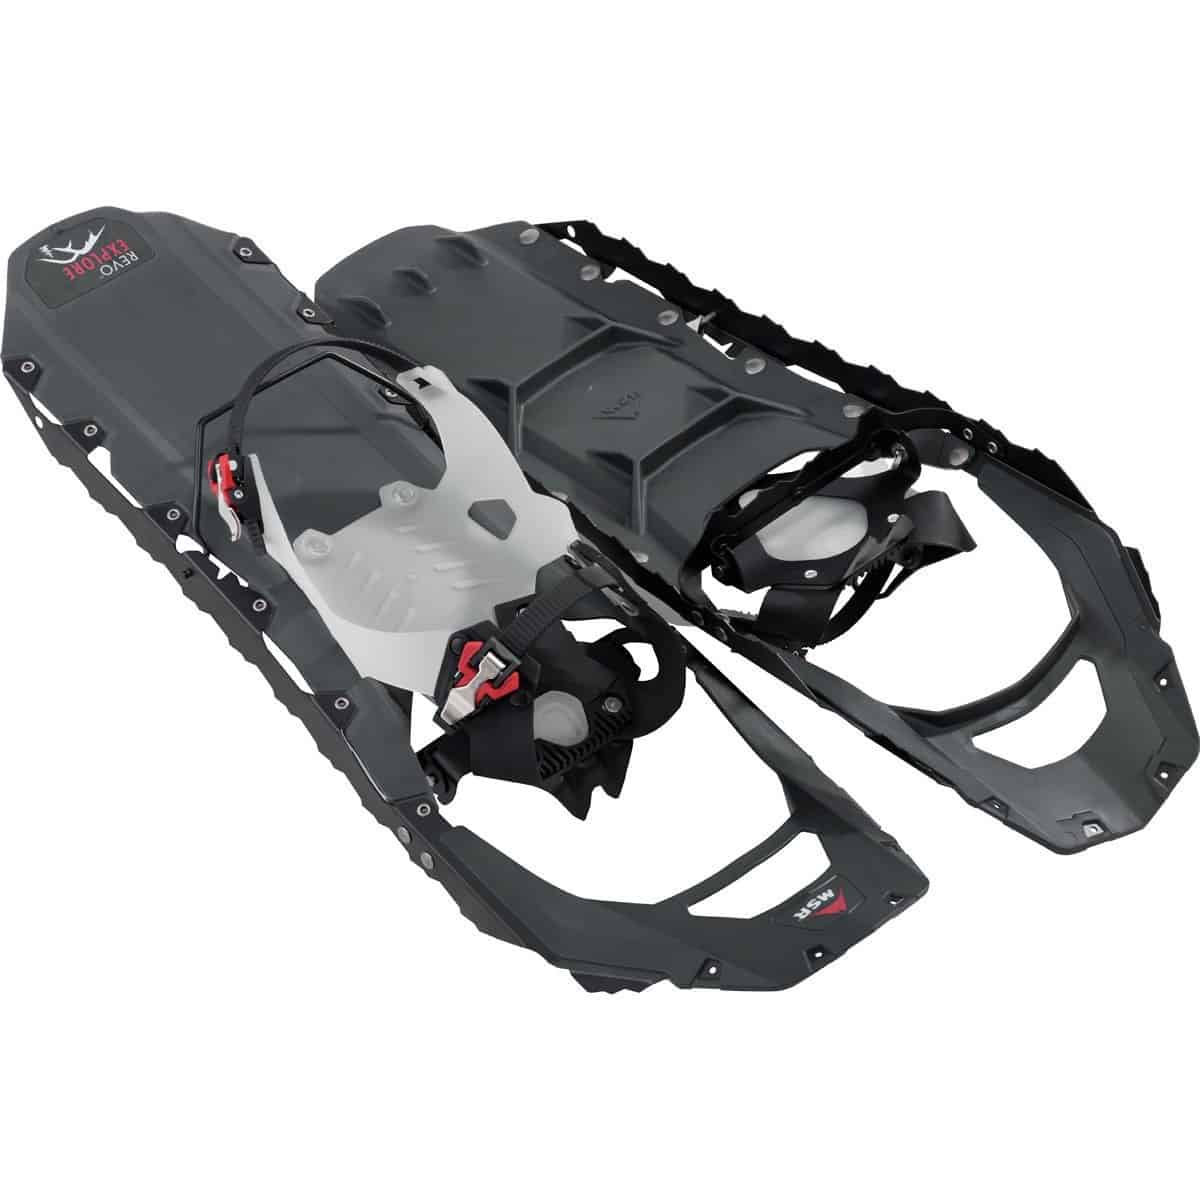 12 Best Snowshoes Reviewed